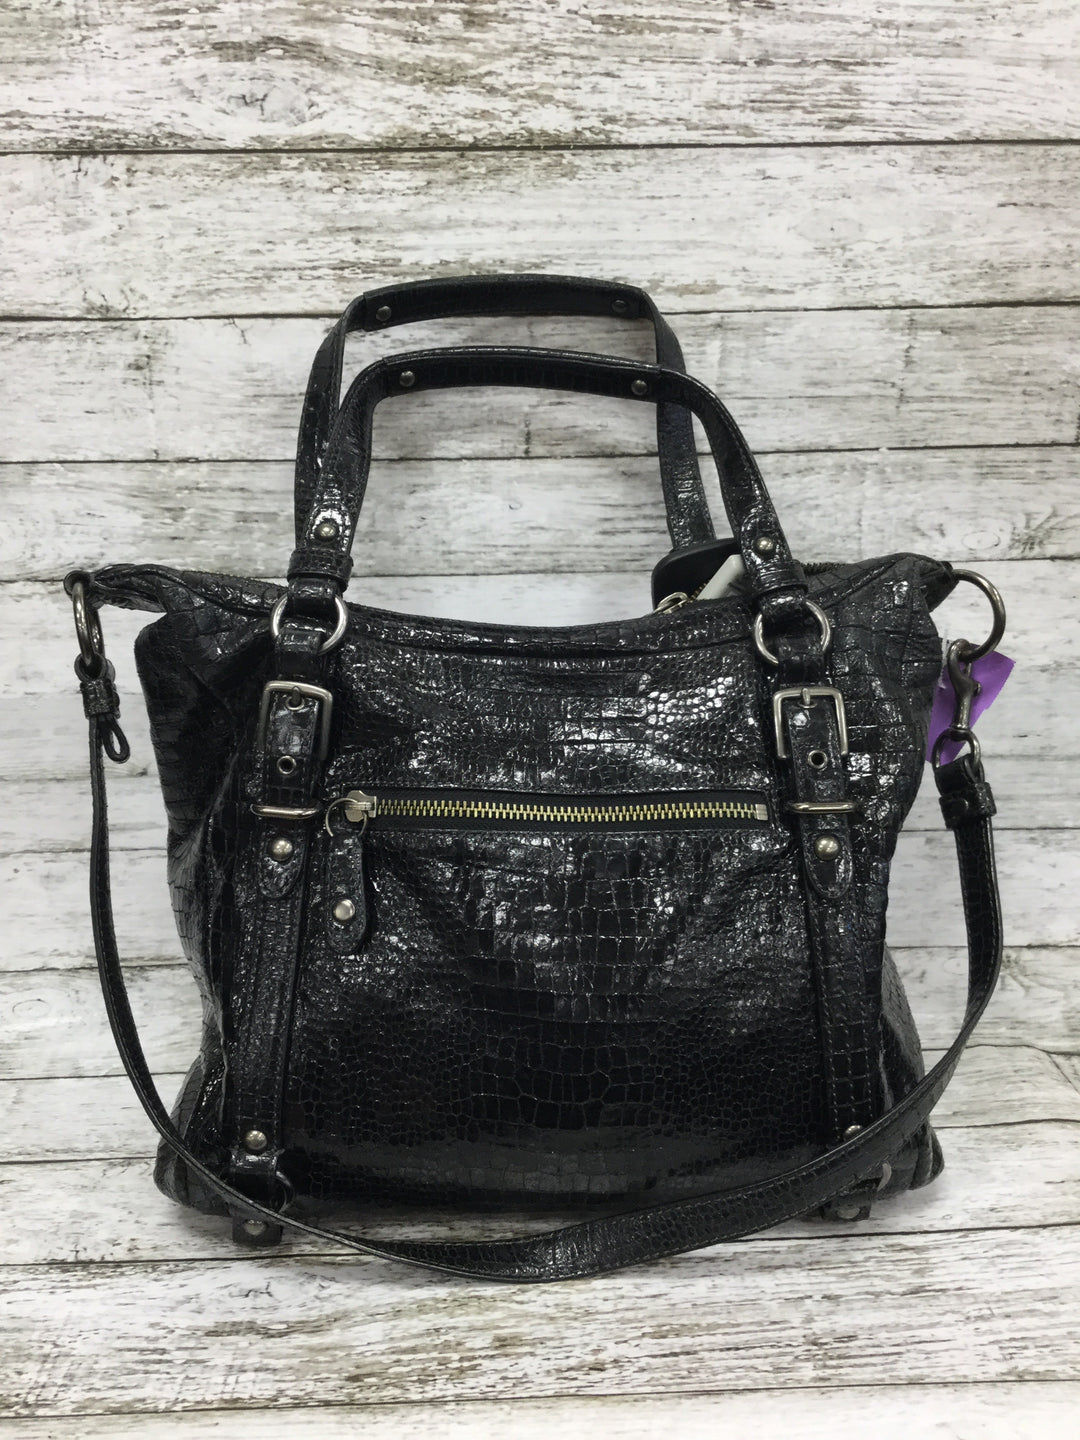 Primary Photo - BRAND: COACH , STYLE: HANDBAG , COLOR: BLACK , SIZE: LARGE , OTHER INFO: ALEXANDRA , SKU: 127-4942-3300, , THIS LEATHER COACH HANDBAG IS IN VERY GOOD CONDITION WITH SOME MINOR WEAR. THE INSIDE AND OUTSIDE ARE BOTH VERY CLEAN.